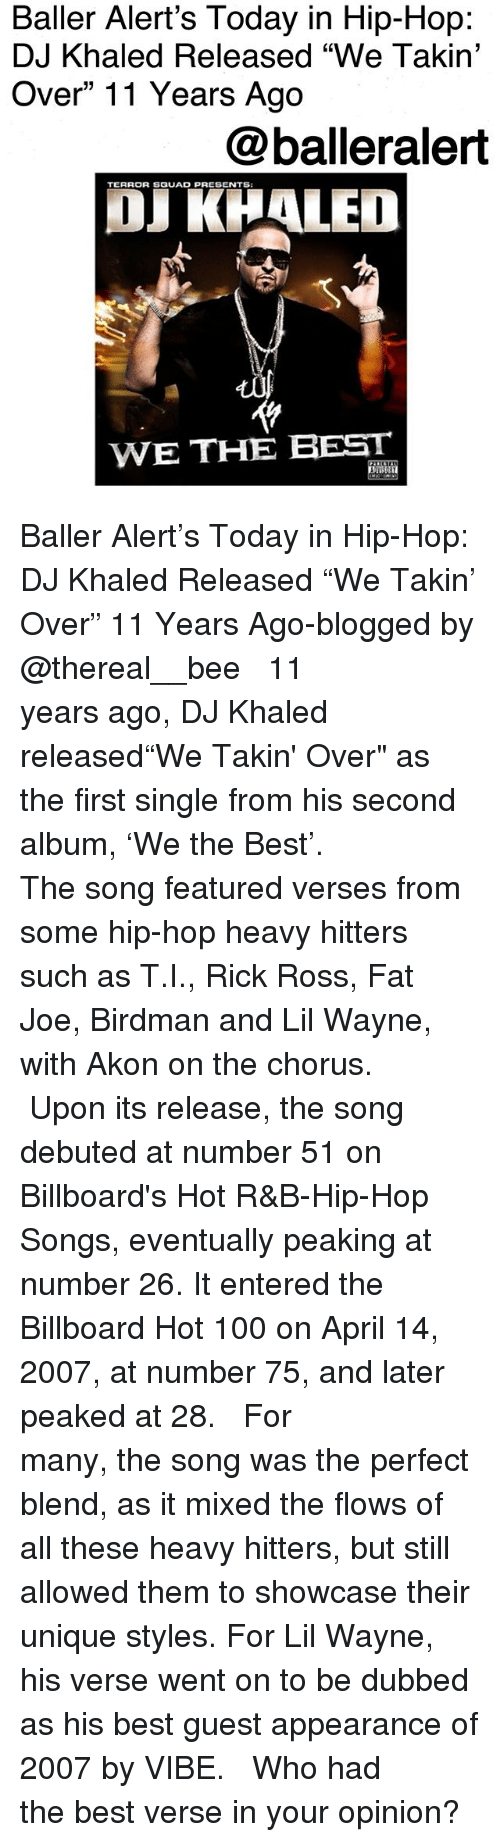 "Akon, Anaconda, and Baller Alert: Baller Alert's Today in Hip-Hop:  DJ Khaled Released ""We Takin'  Over"" 11 Years Ago  @balleralert  TERROR SGUAD PRESENTS  OJ KHALED  WE THE BEST Baller Alert's Today in Hip-Hop: DJ Khaled Released ""We Takin' Over"" 11 Years Ago-blogged by @thereal__bee ⠀⠀⠀⠀⠀⠀⠀⠀⠀ ⠀⠀ 11 years ago, DJ Khaled released""We Takin' Over"" as the first single from his second album, 'We the Best'. ⠀⠀⠀⠀⠀⠀⠀⠀⠀ ⠀⠀ The song featured verses from some hip-hop heavy hitters such as T.I., Rick Ross, Fat Joe, Birdman and Lil Wayne, with Akon on the chorus. ⠀⠀⠀⠀⠀⠀⠀⠀⠀ ⠀⠀ Upon its release, the song debuted at number 51 on Billboard's Hot R&B-Hip-Hop Songs, eventually peaking at number 26. It entered the Billboard Hot 100 on April 14, 2007, at number 75, and later peaked at 28. ⠀⠀⠀⠀⠀⠀⠀⠀⠀ ⠀⠀ For many, the song was the perfect blend, as it mixed the flows of all these heavy hitters, but still allowed them to showcase their unique styles. For Lil Wayne, his verse went on to be dubbed as his best guest appearance of 2007 by VIBE. ⠀⠀⠀⠀⠀⠀⠀⠀⠀ ⠀⠀ Who had the best verse in your opinion?"